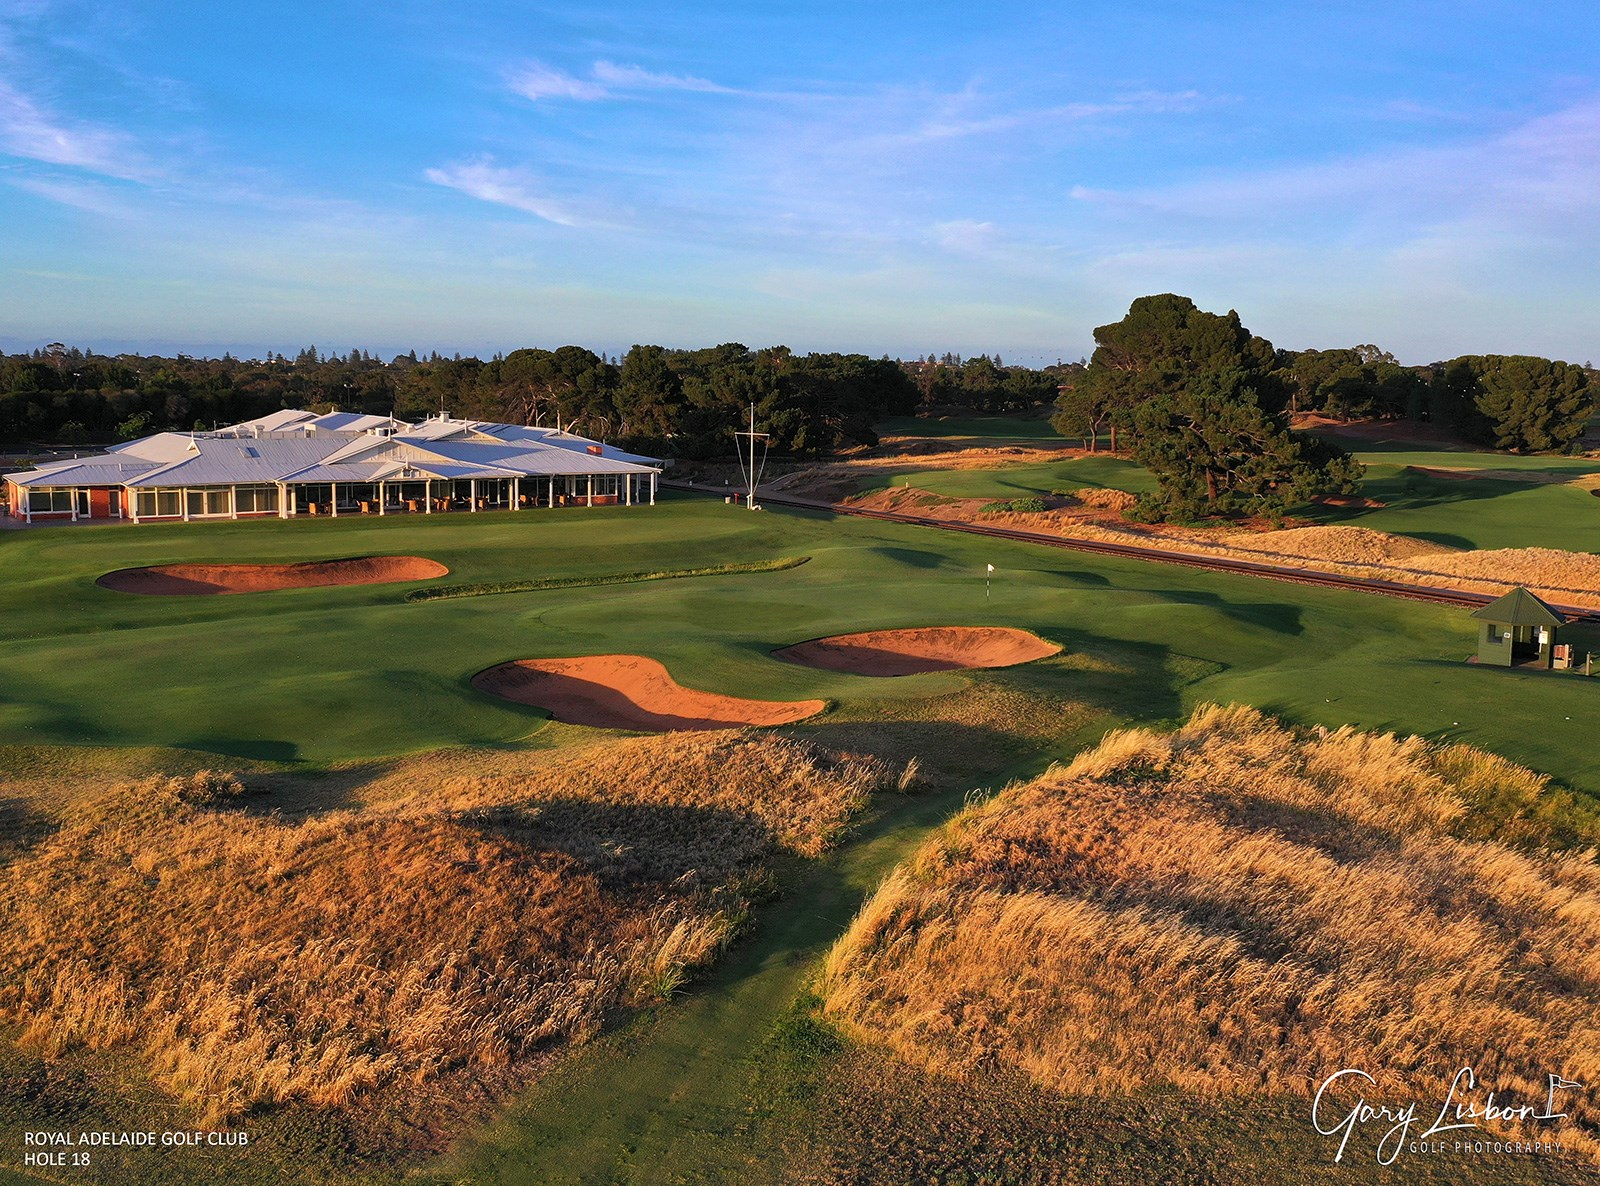 Royal Adelaide Golf Club Hole 18